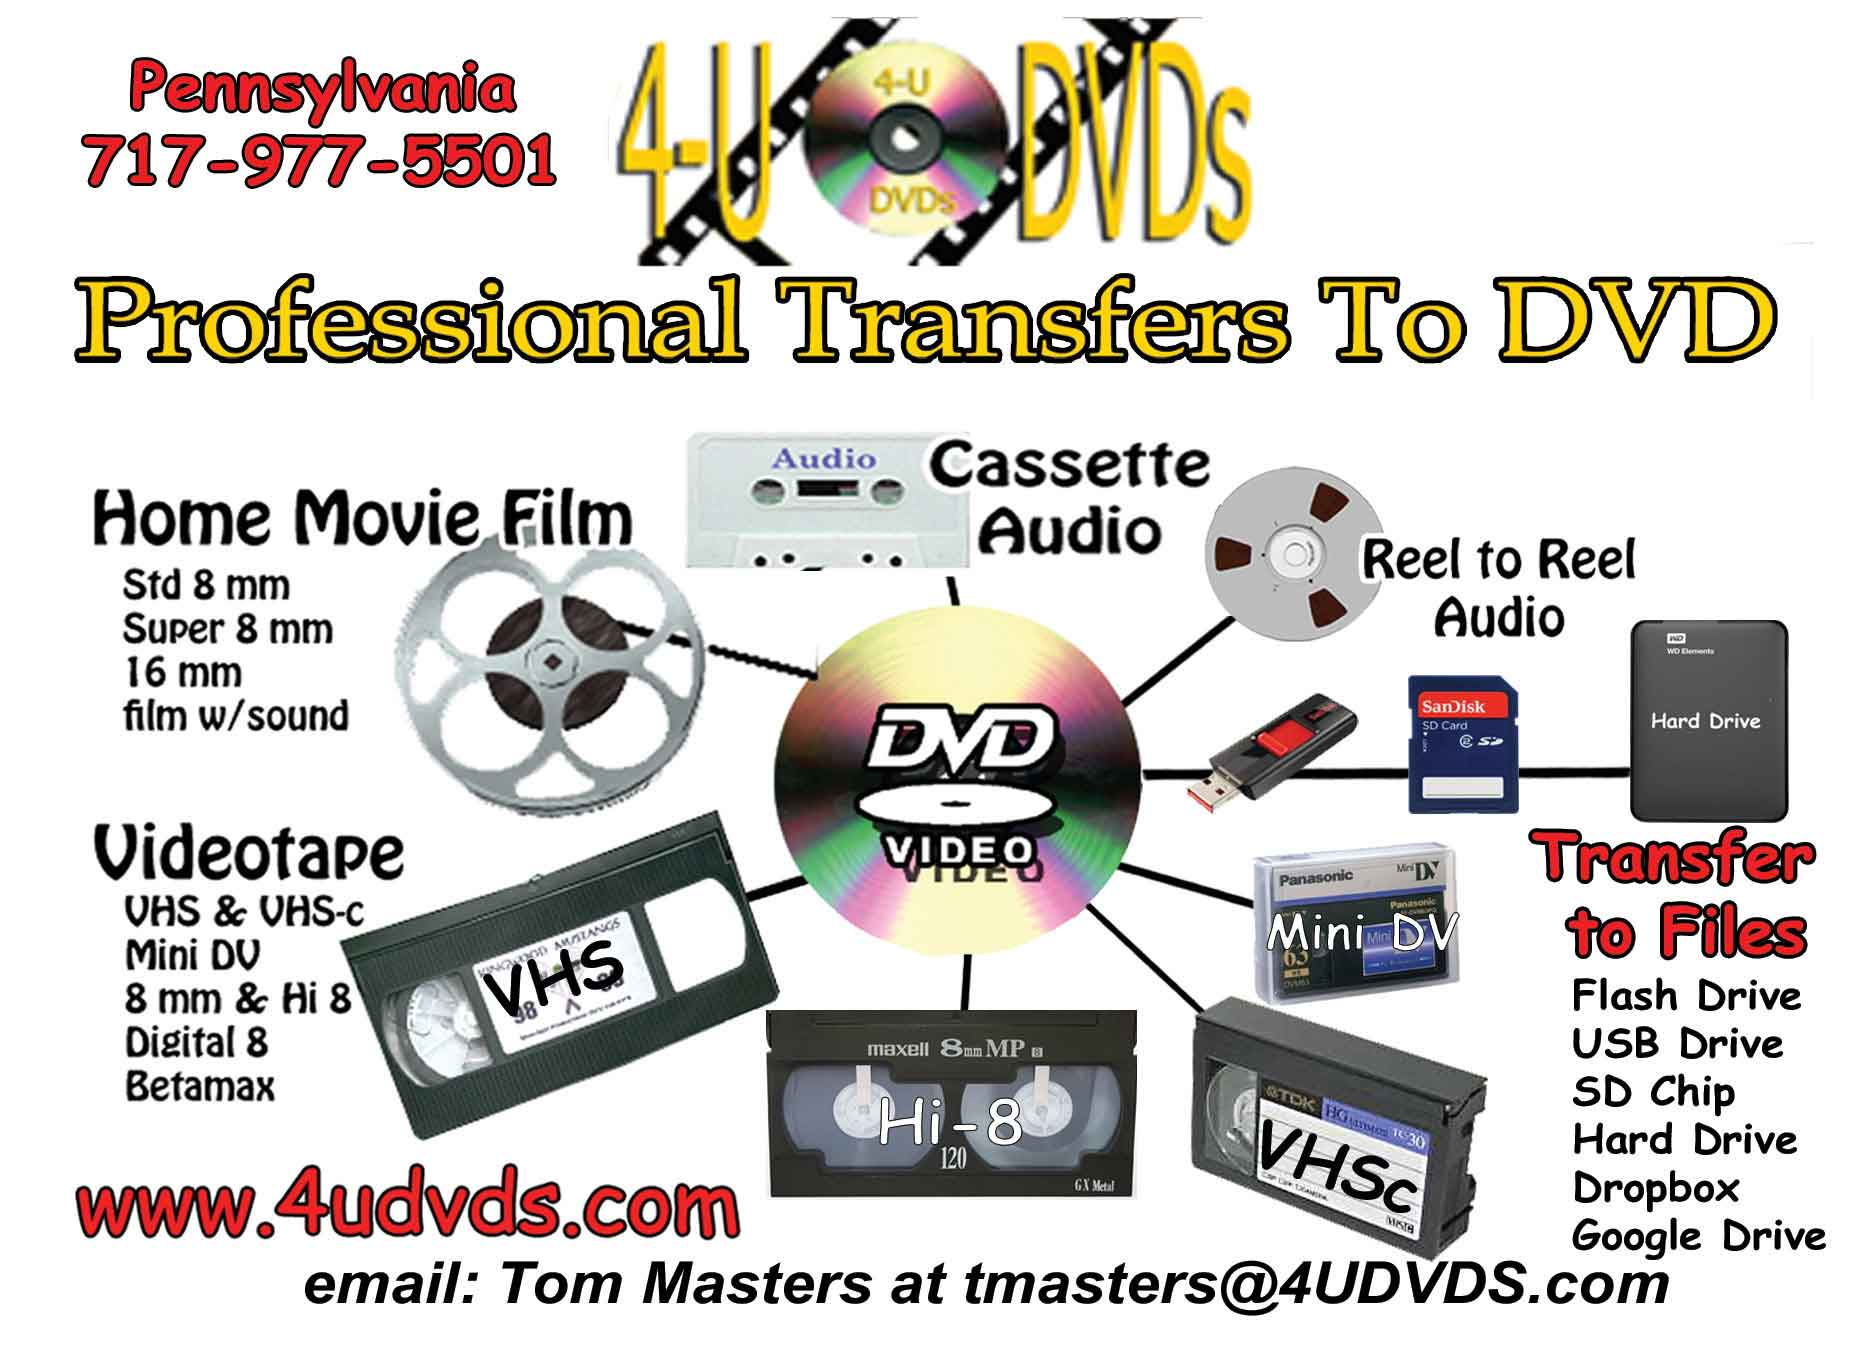 4udvds | Film Transfer, Converting VHS to DVD & CD Duplication